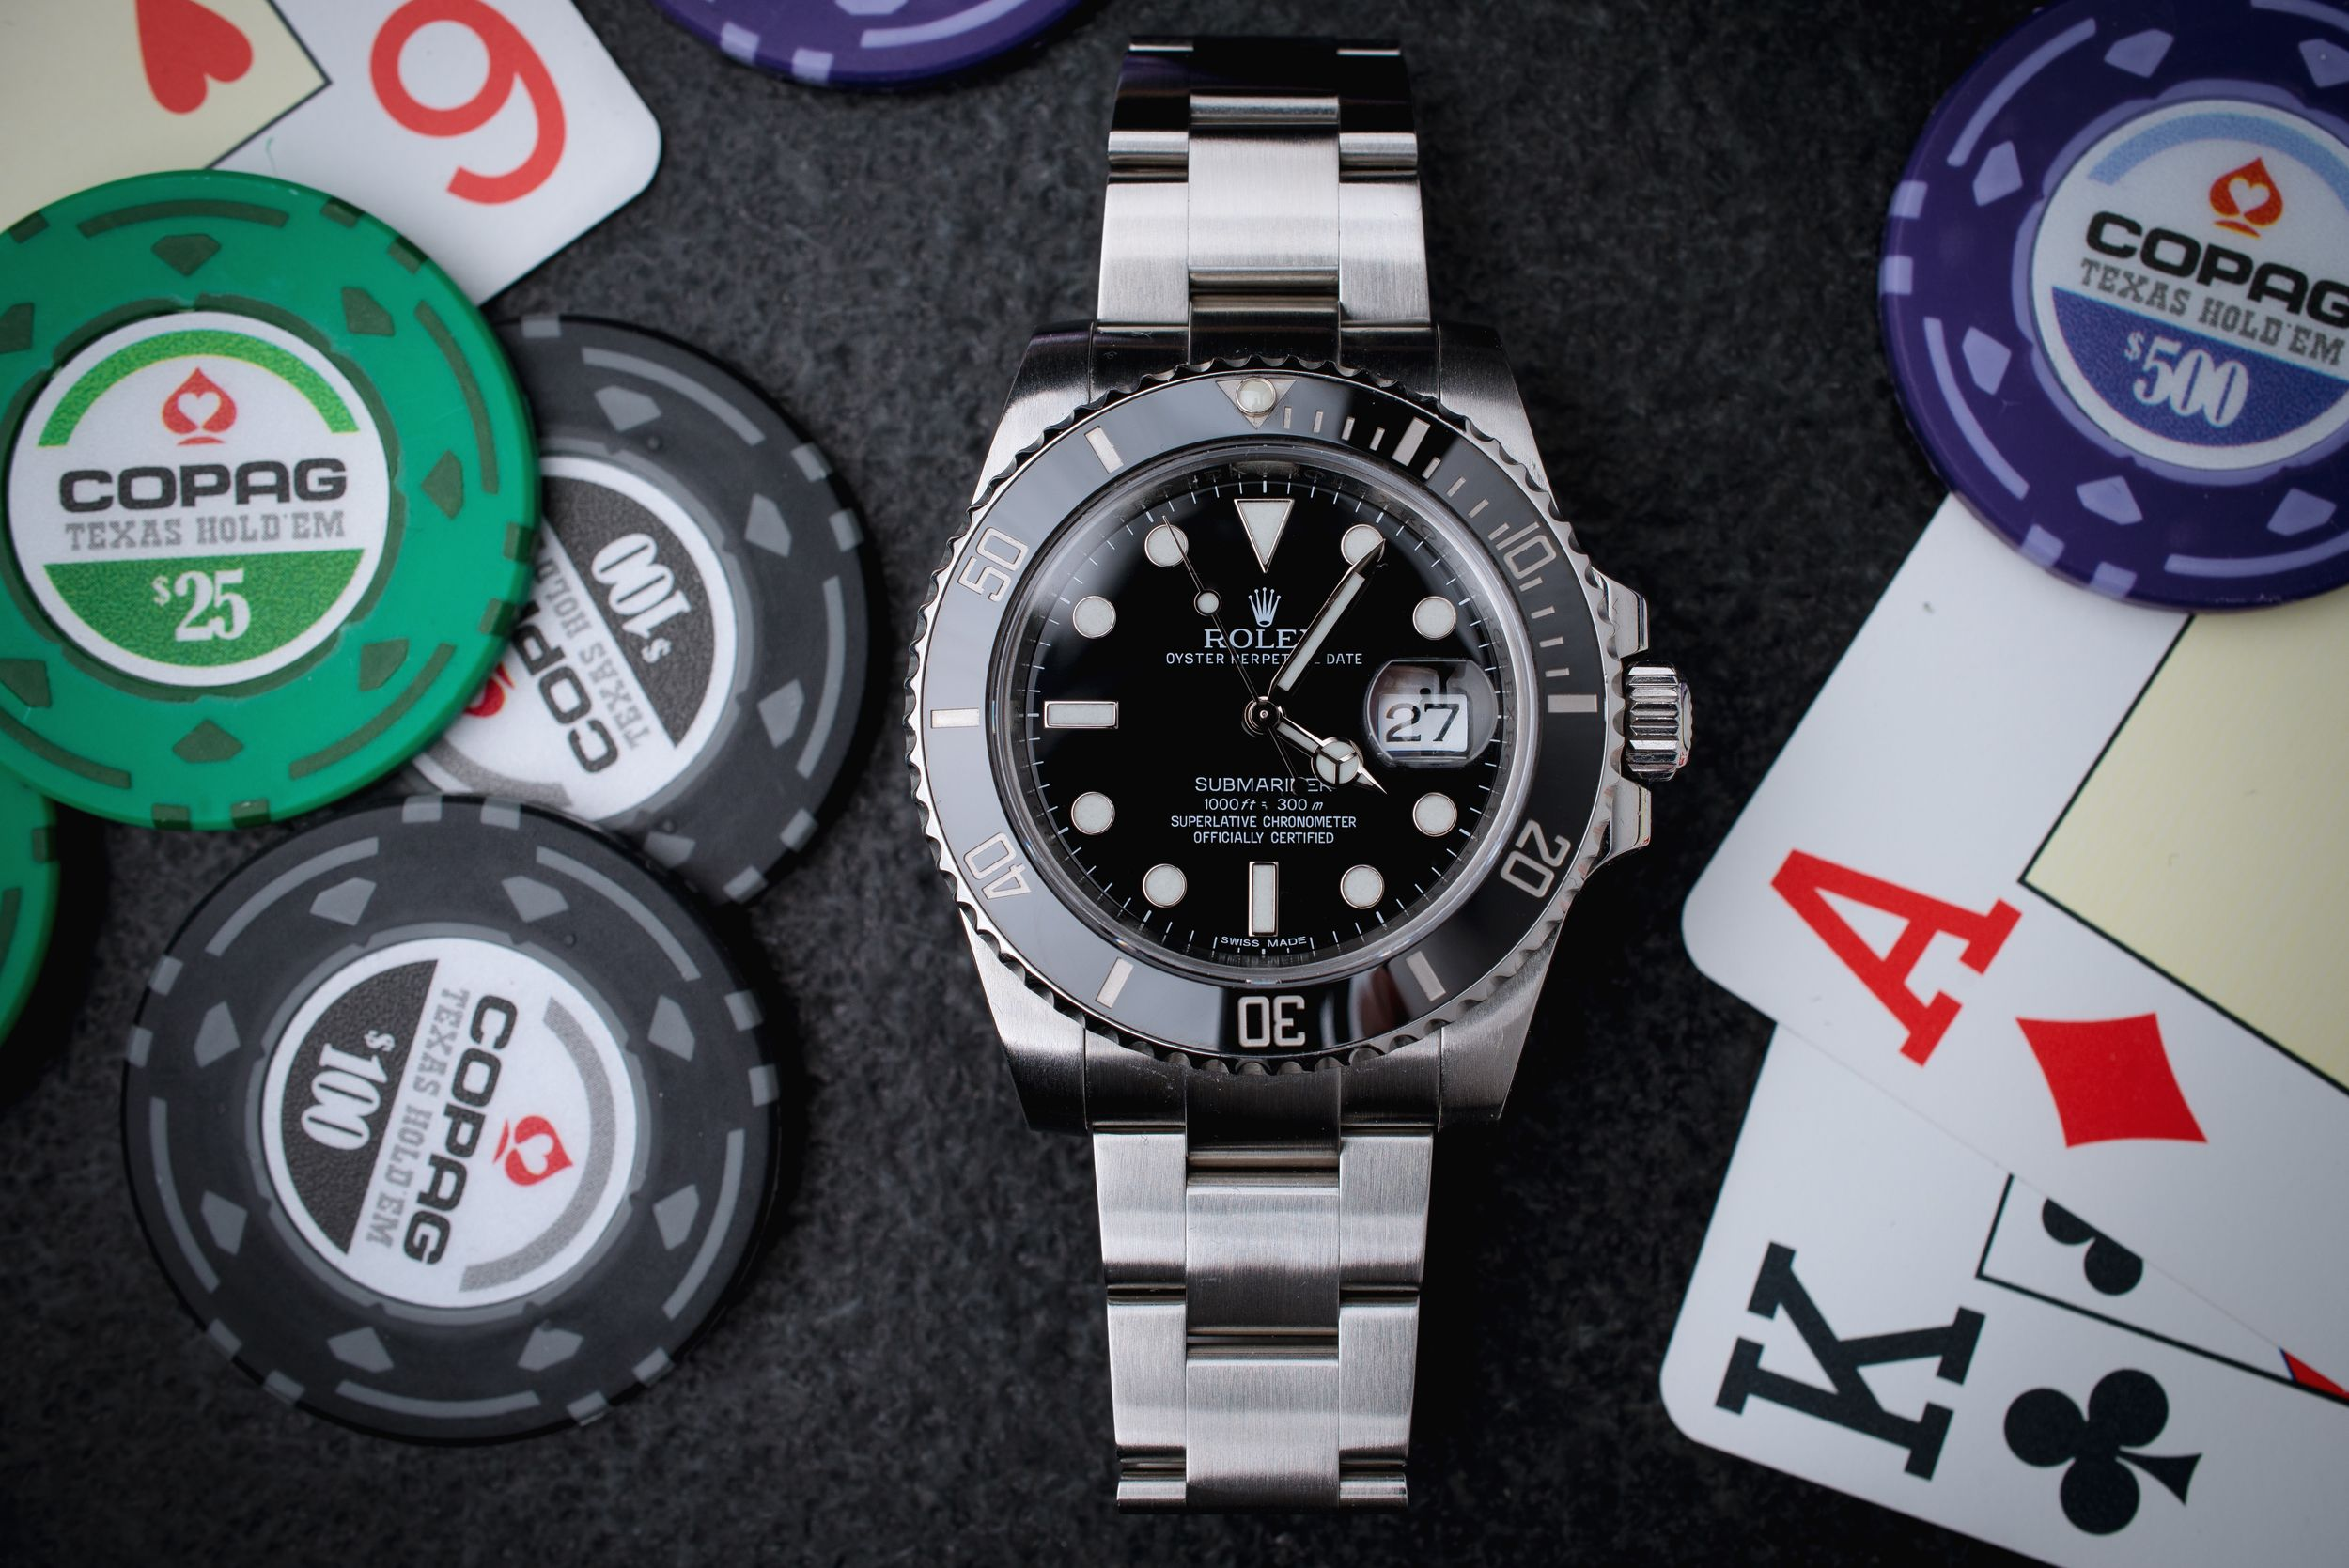 Rolex Submariner 116610 Vs Poker Watches Photography Rolex Watches Rolex Submariner